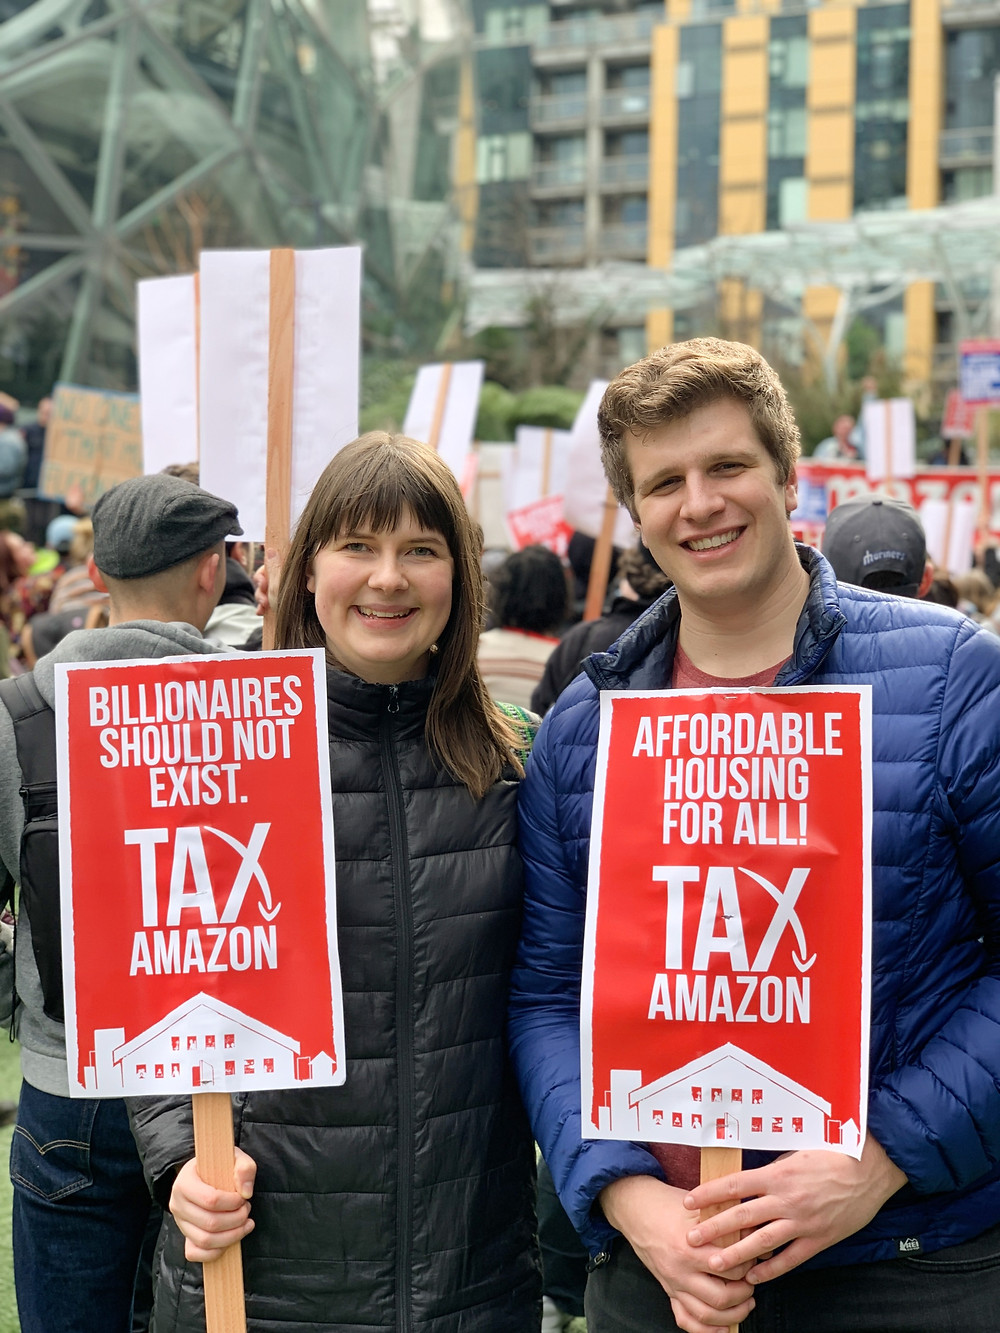 Protesters at a Tax Amazon march in Seattle